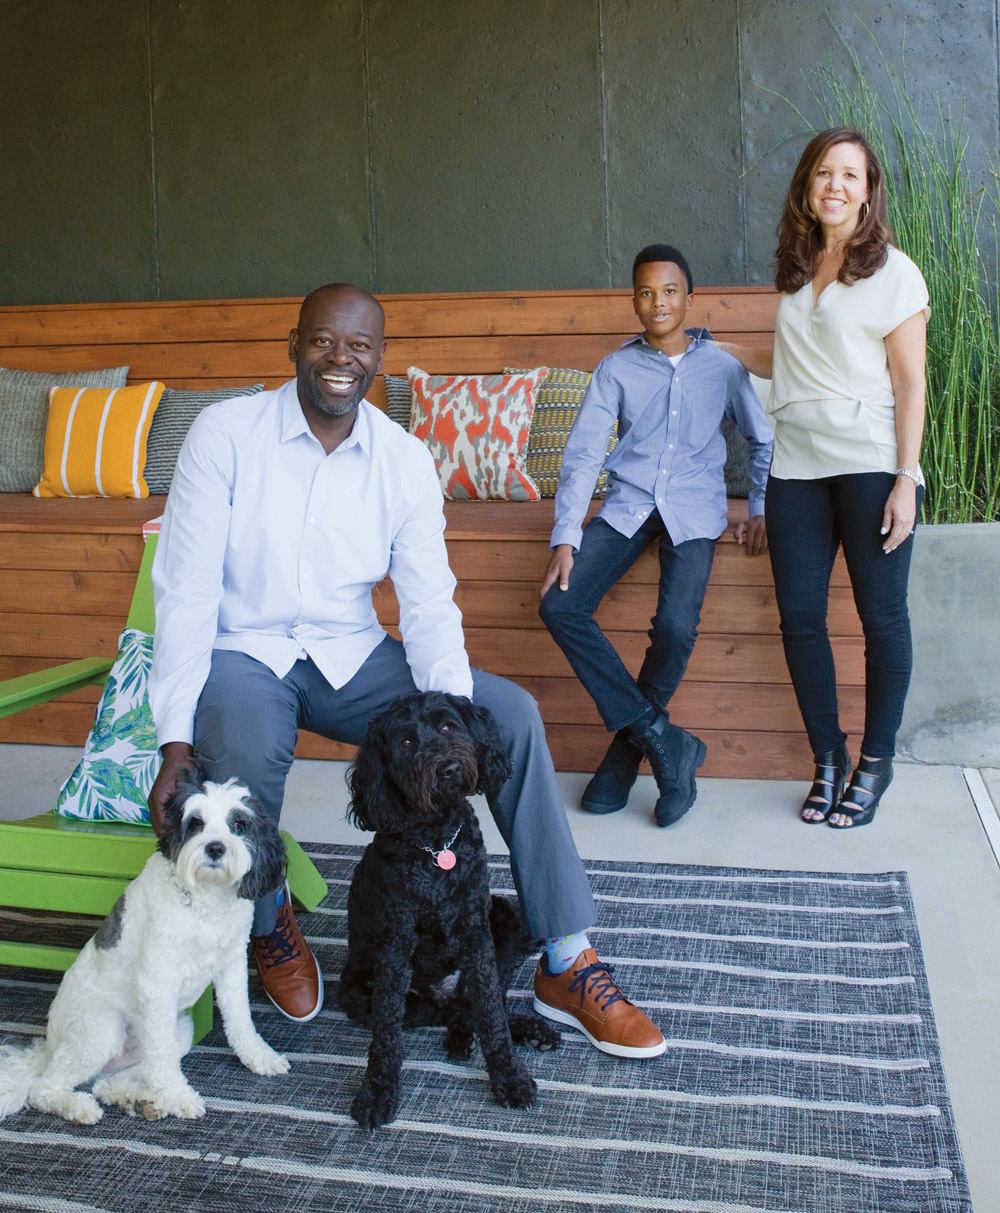 The Freeman family and their two dogs